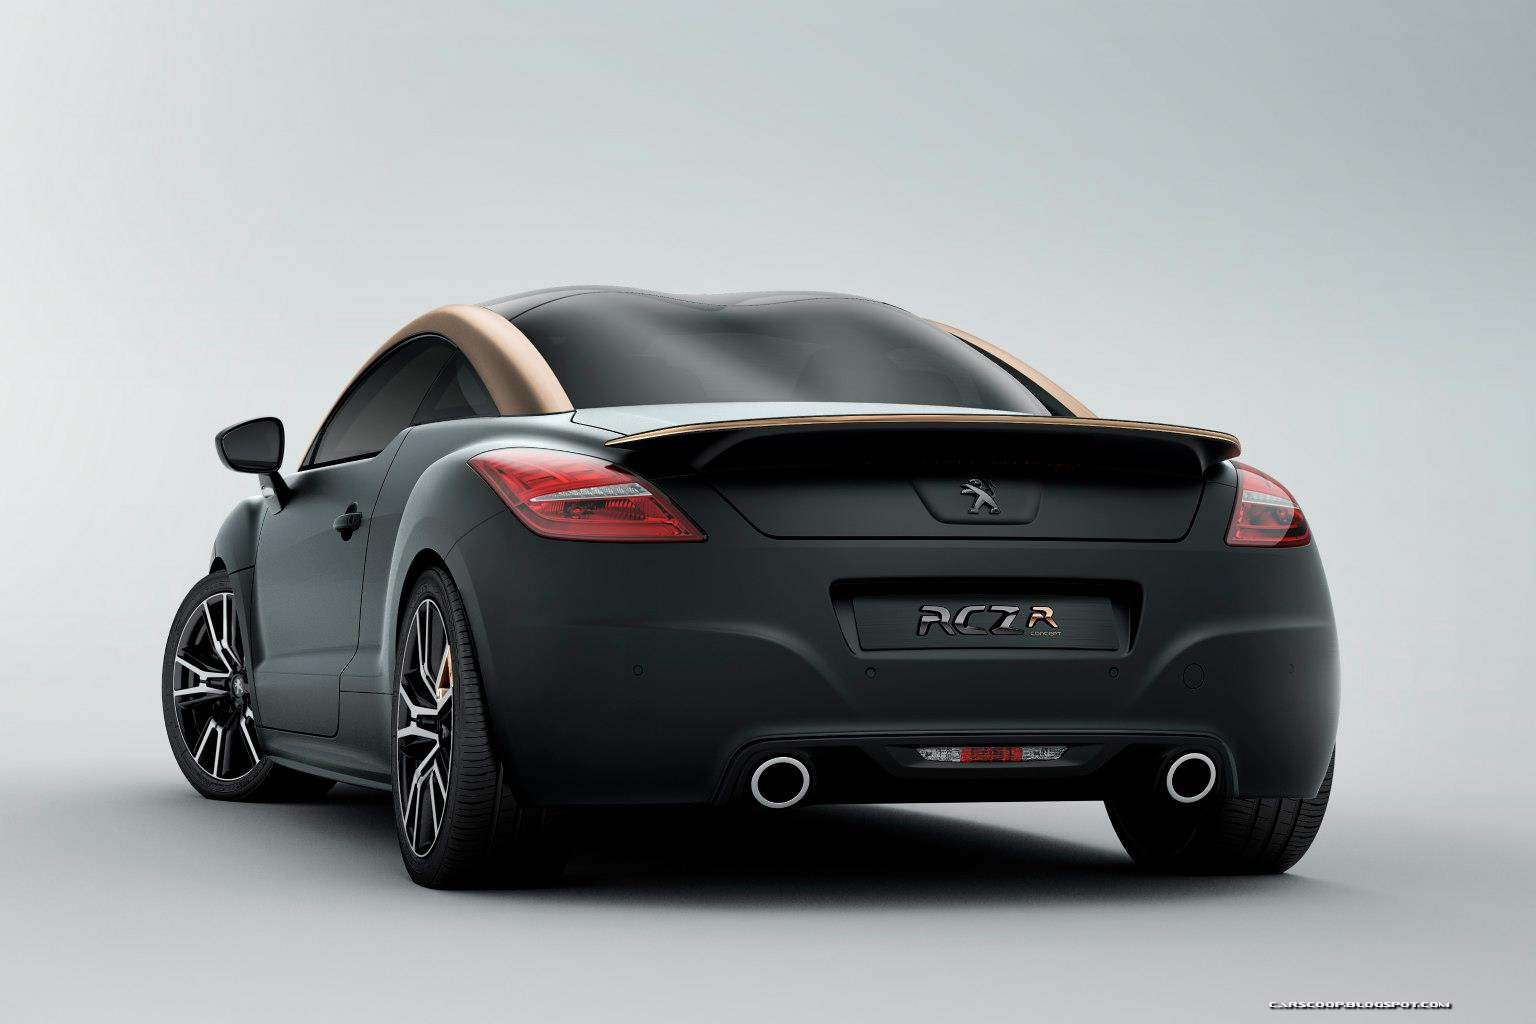 2013 peugeot unveils rcz autooonline magazine. Black Bedroom Furniture Sets. Home Design Ideas